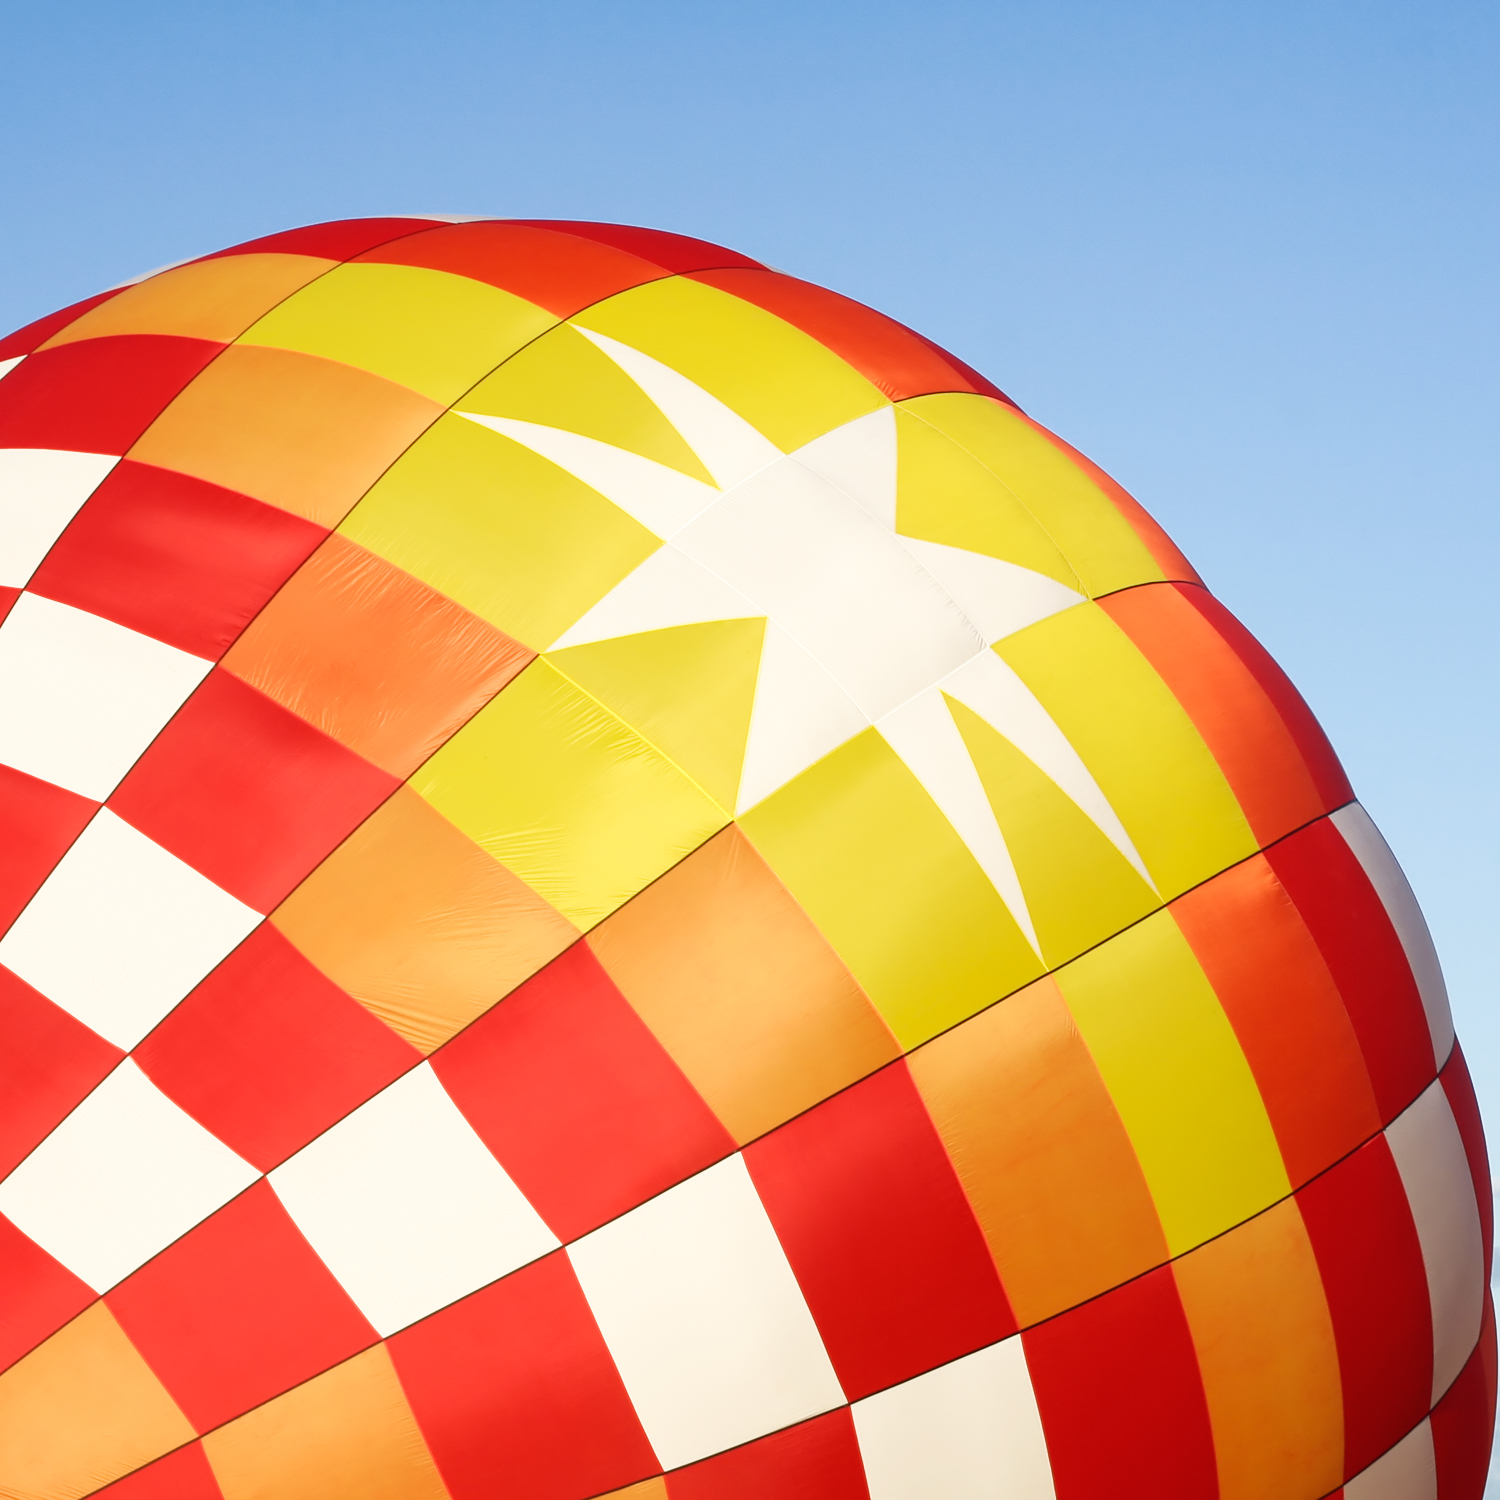 Hot air balloon close-up photo